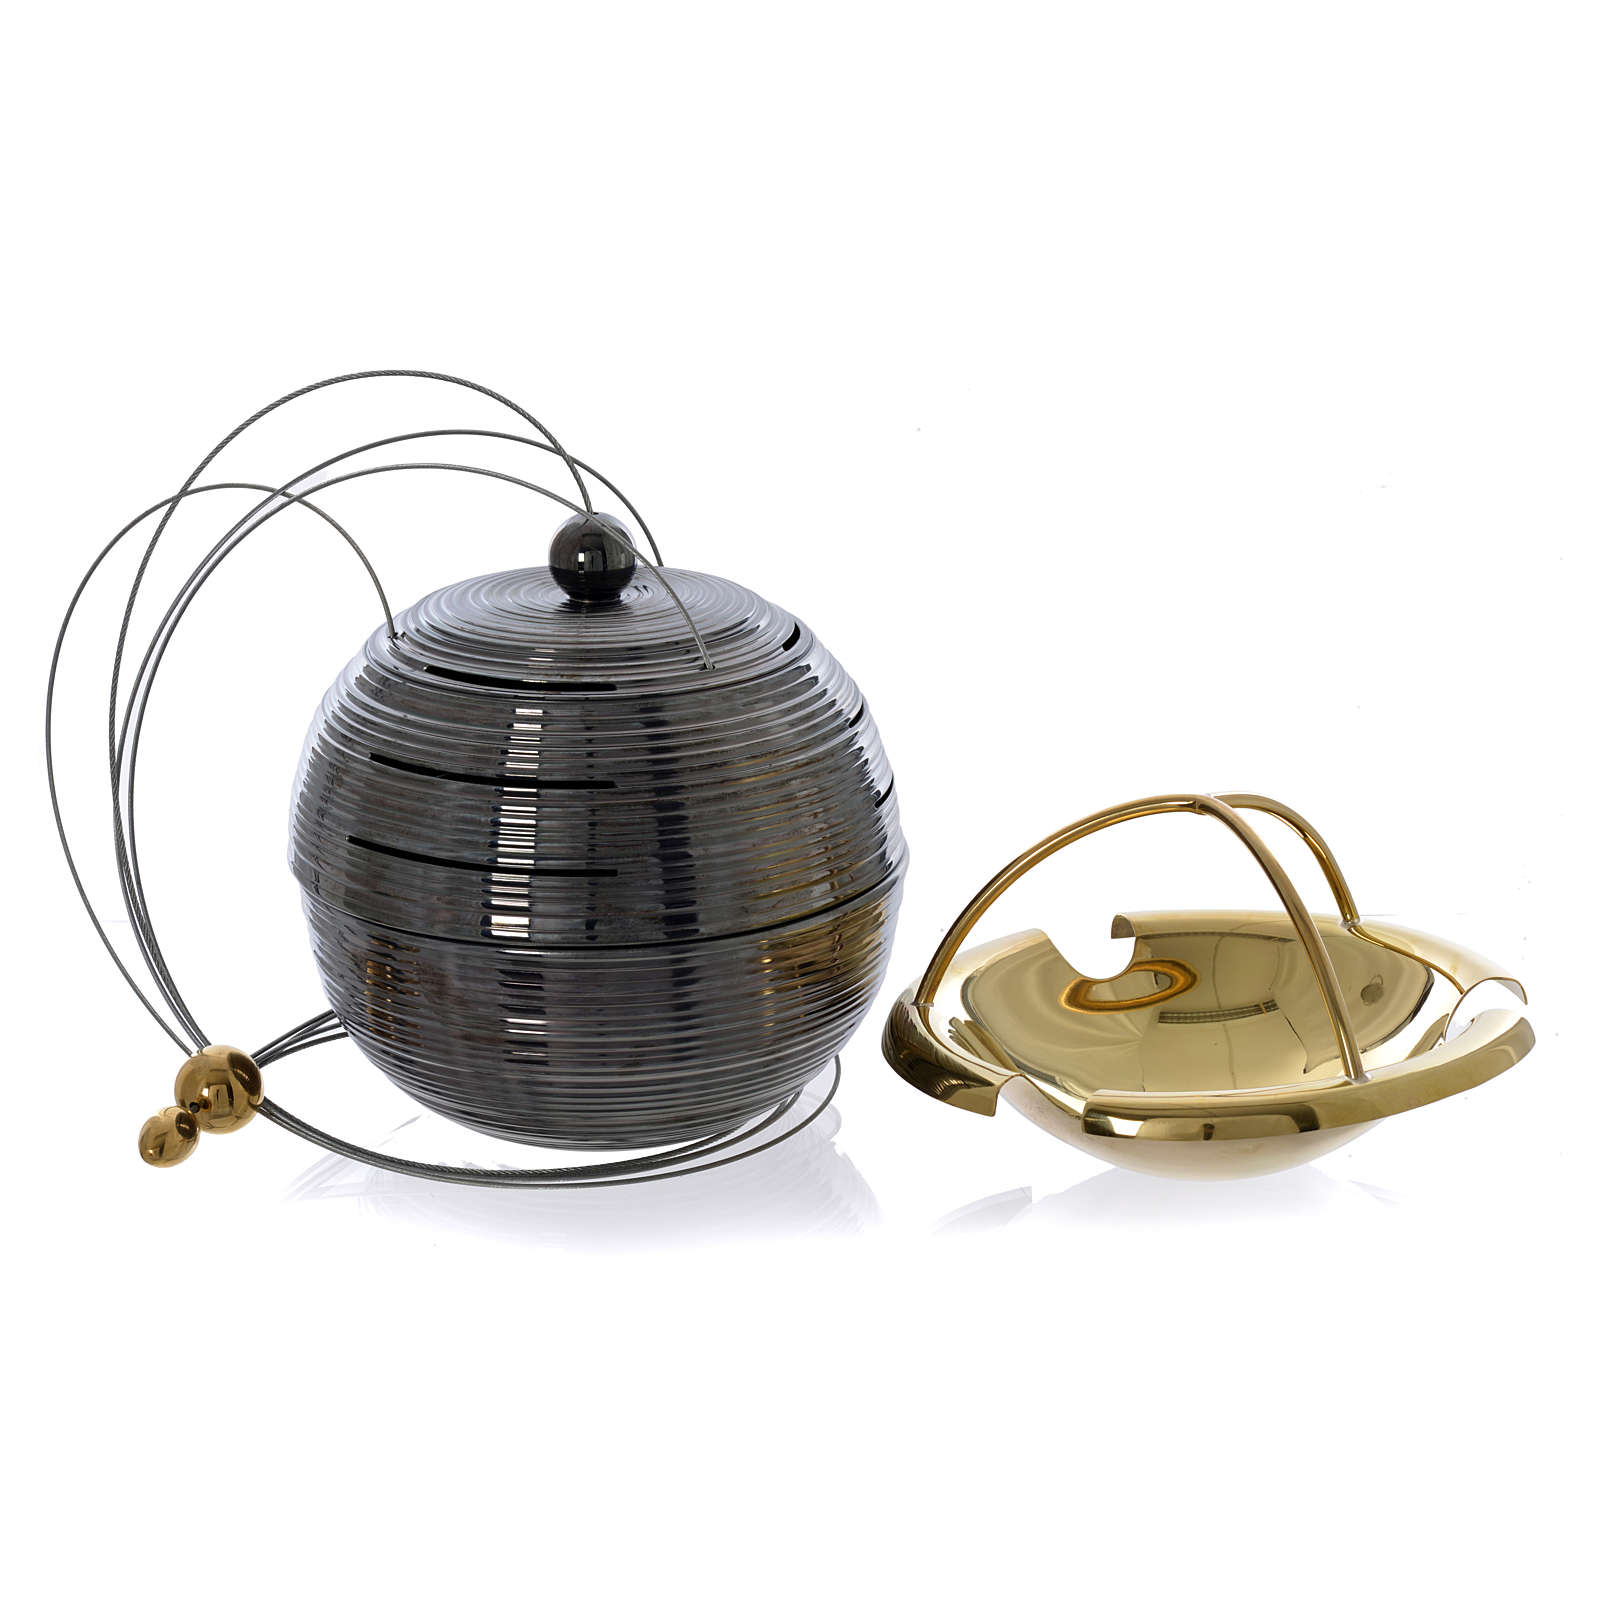 Thurible and Boat, Globus model 3